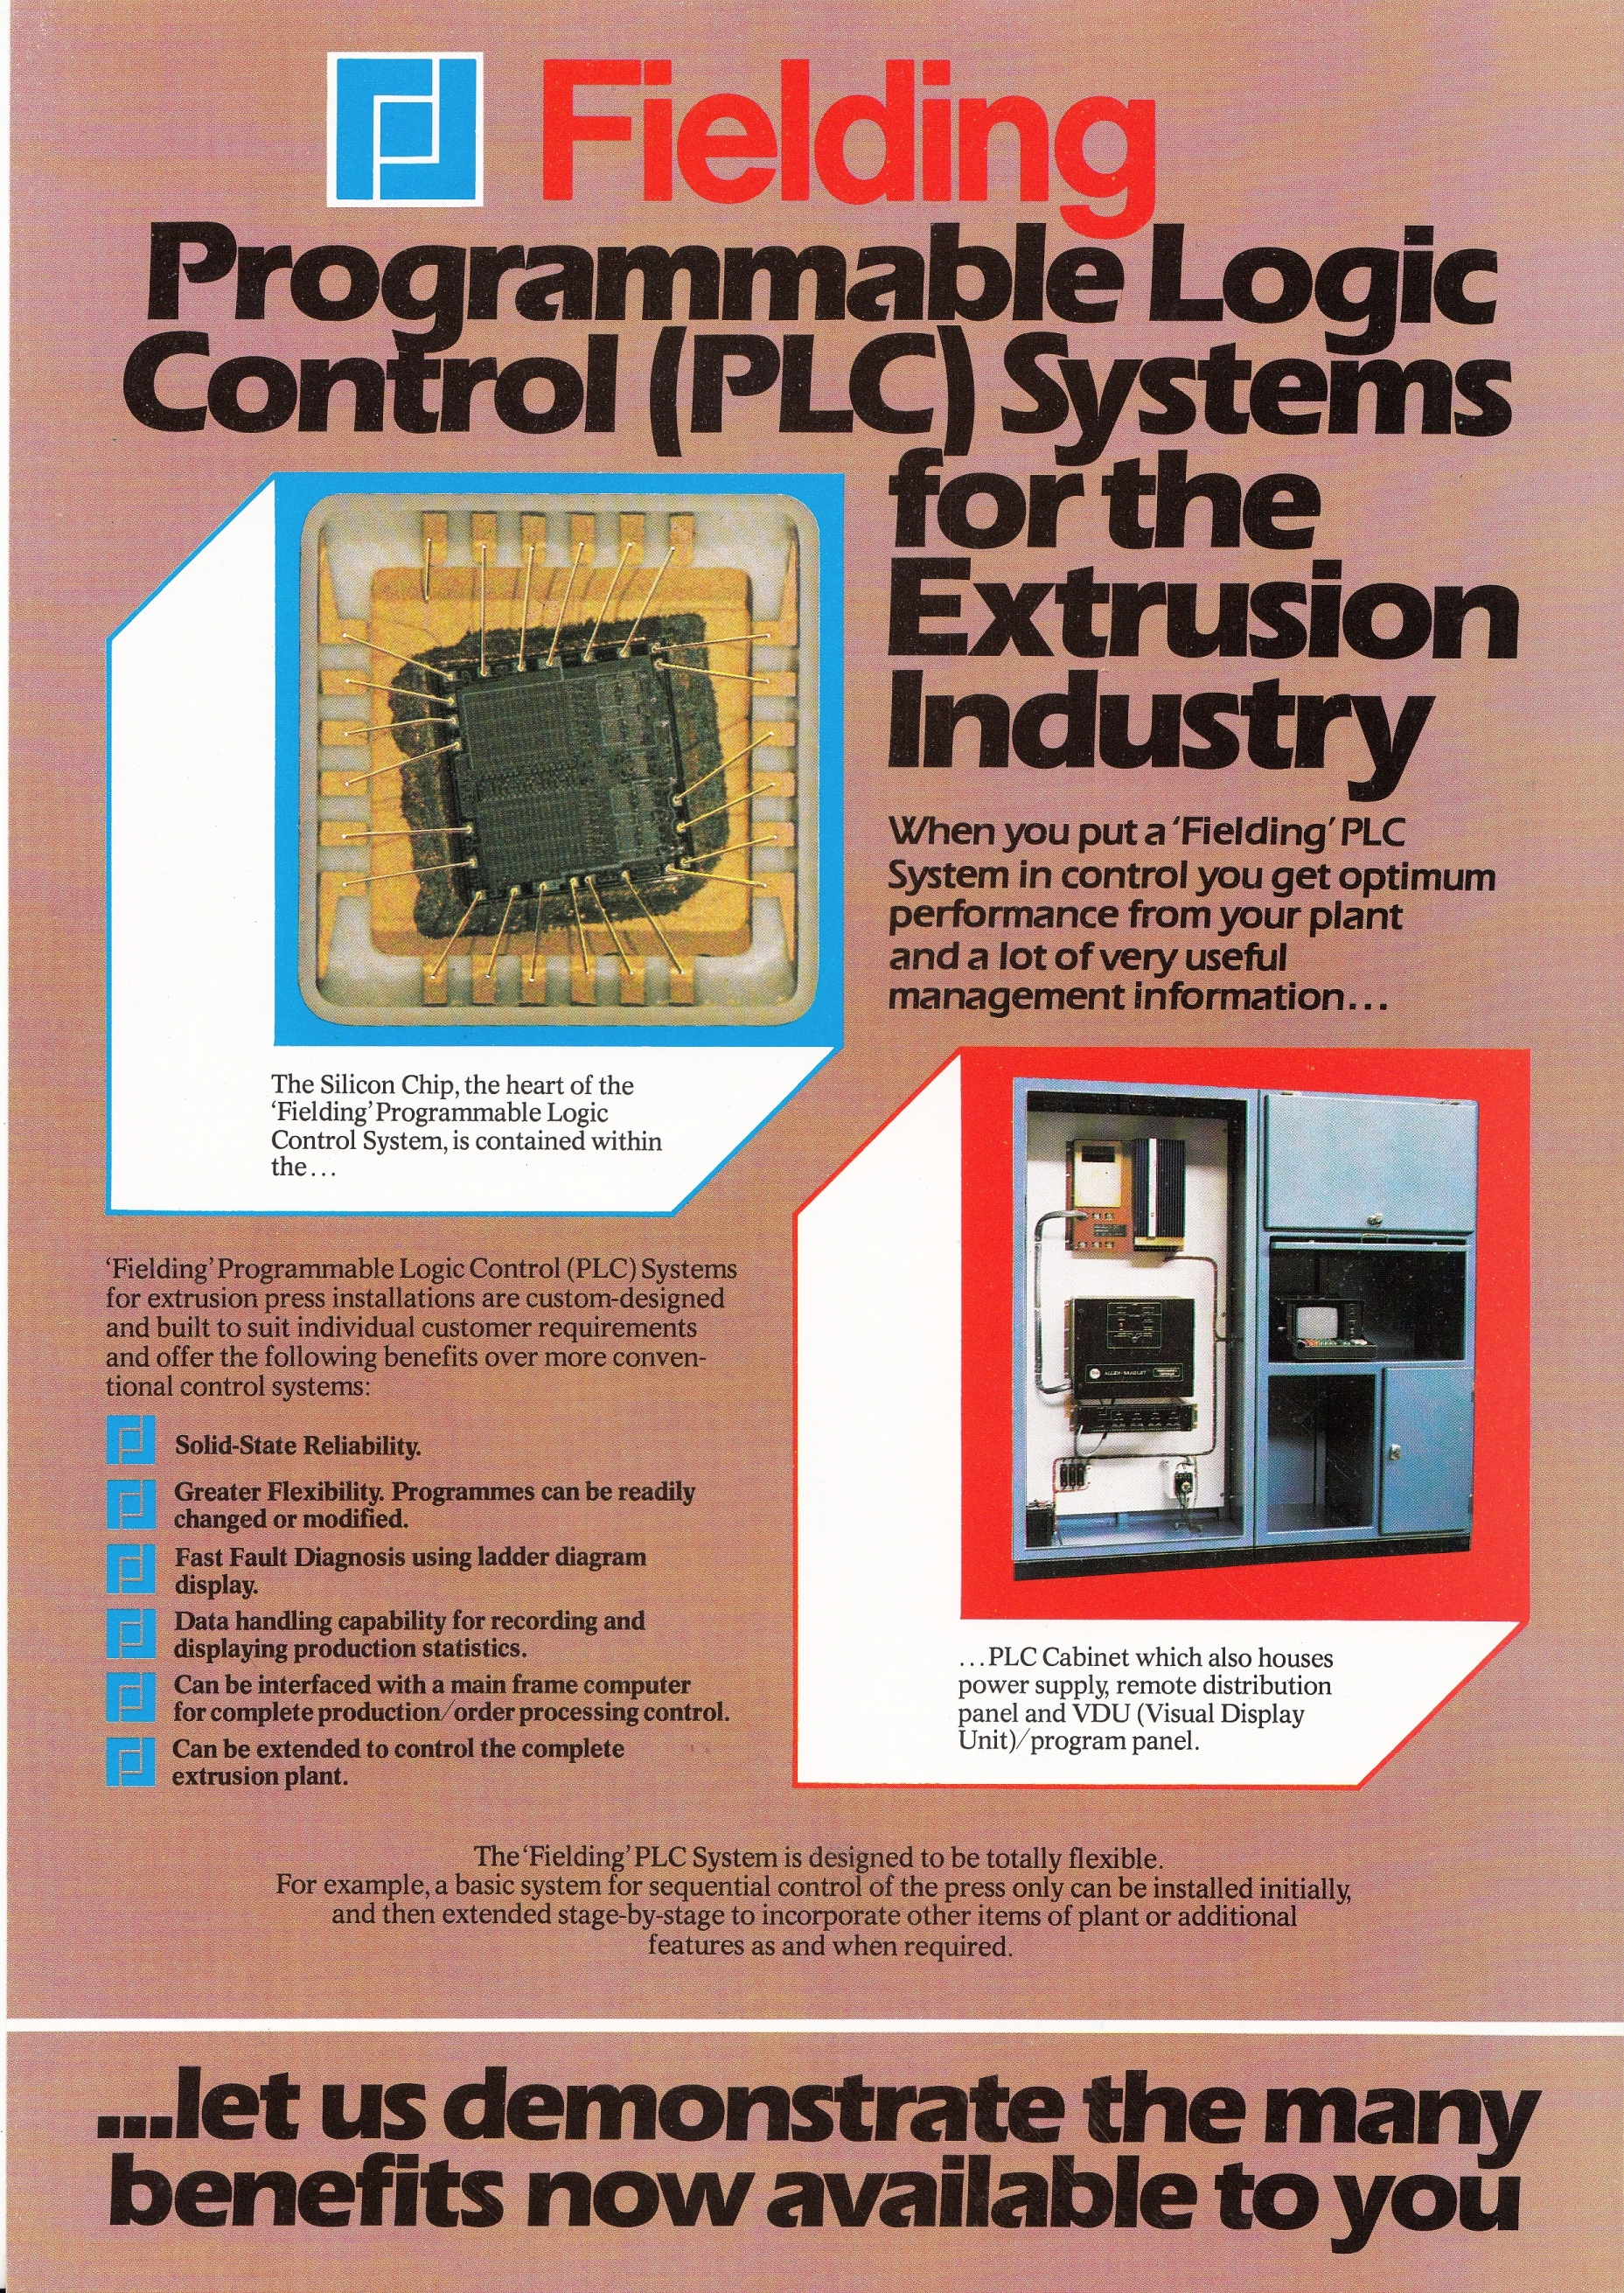 Programmable Logic Control Systems Plc For The Extrusion Industry Ladder Diagram Examples Zoom